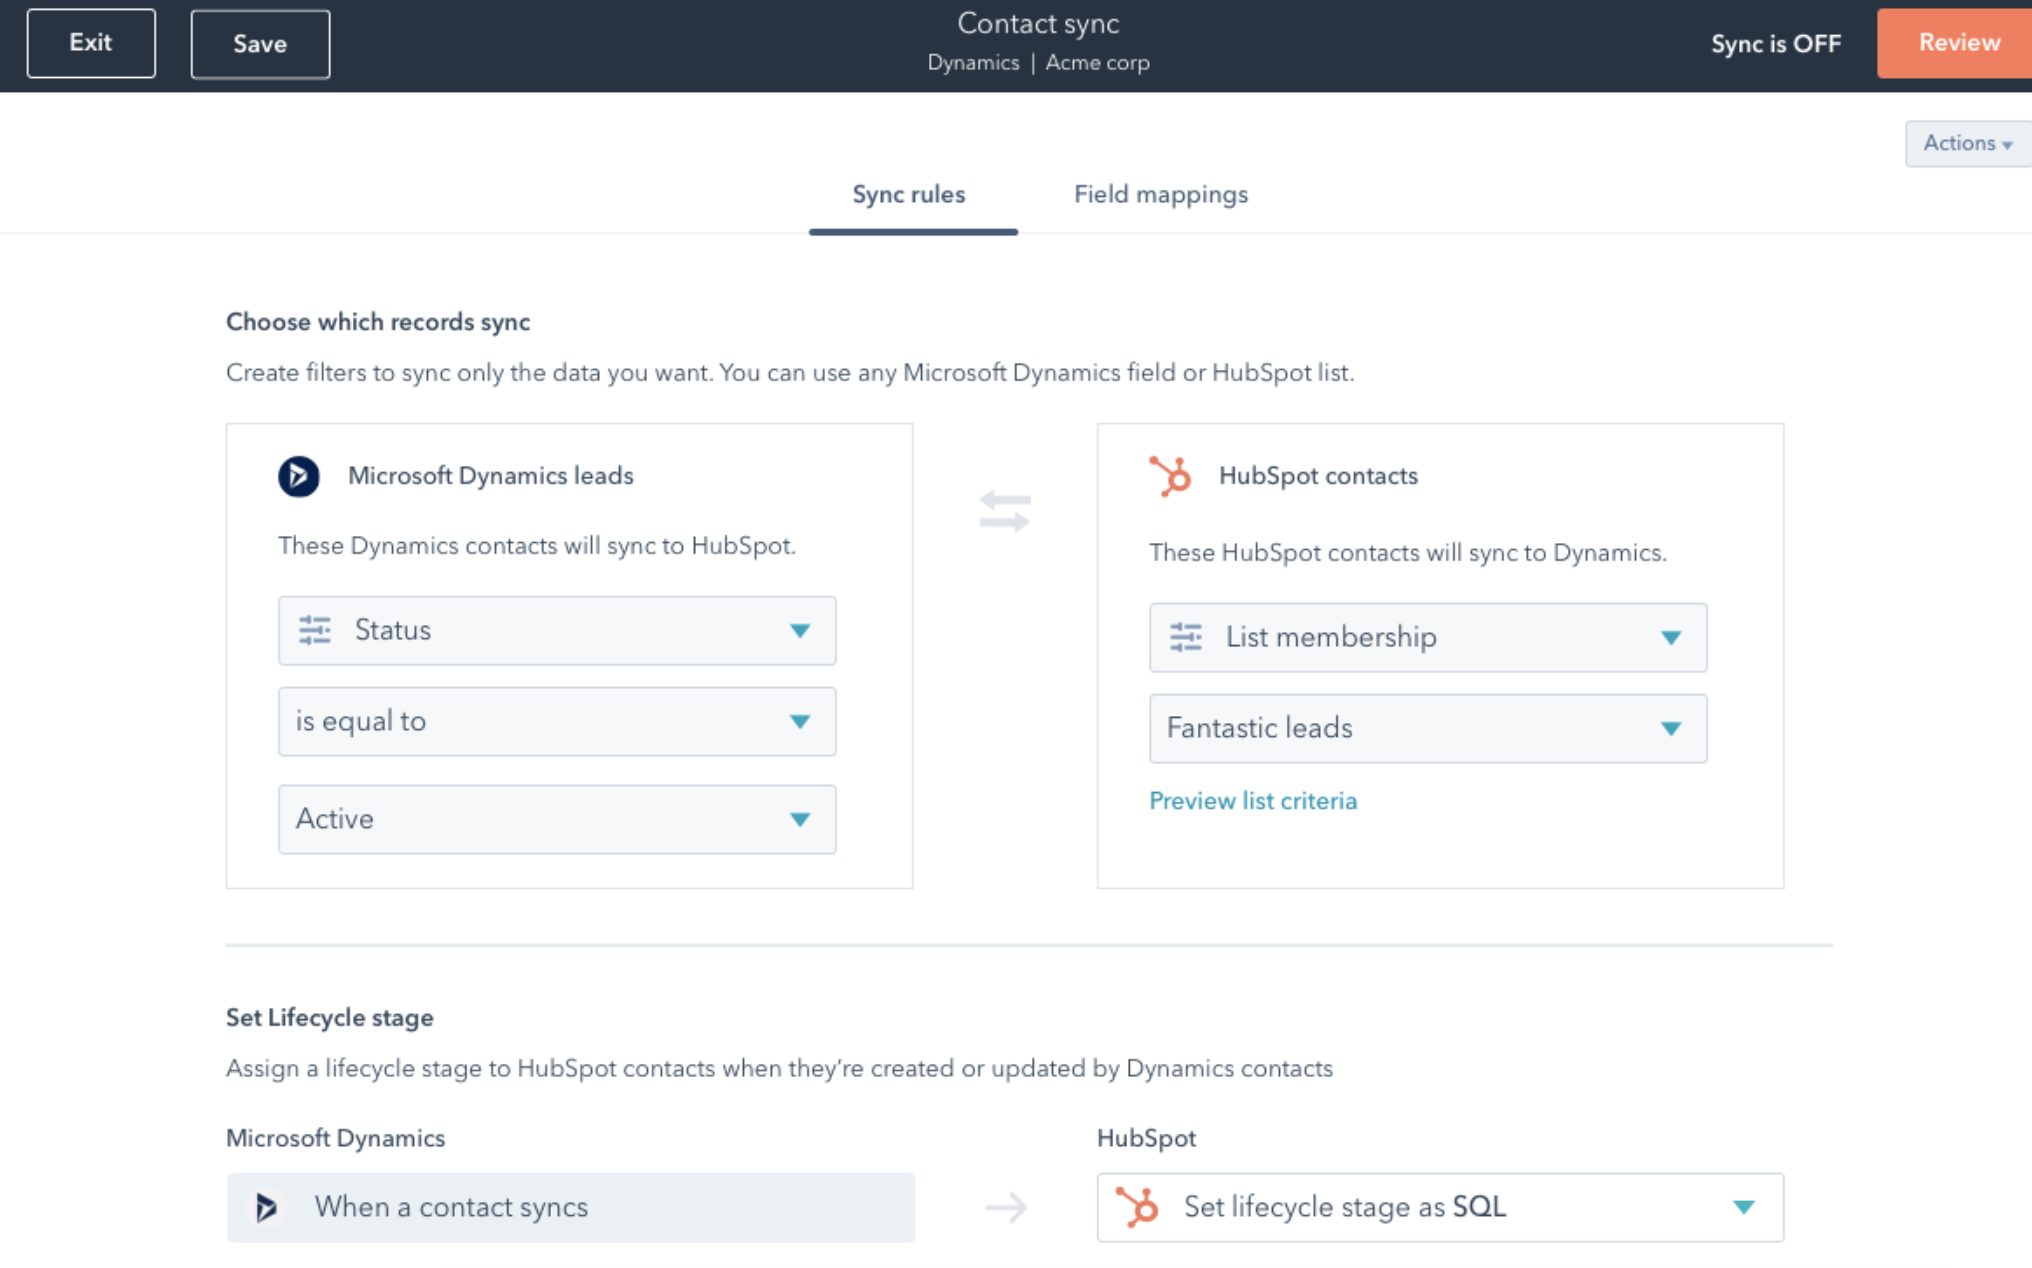 hubspot operations hub data quality analysis and management tool